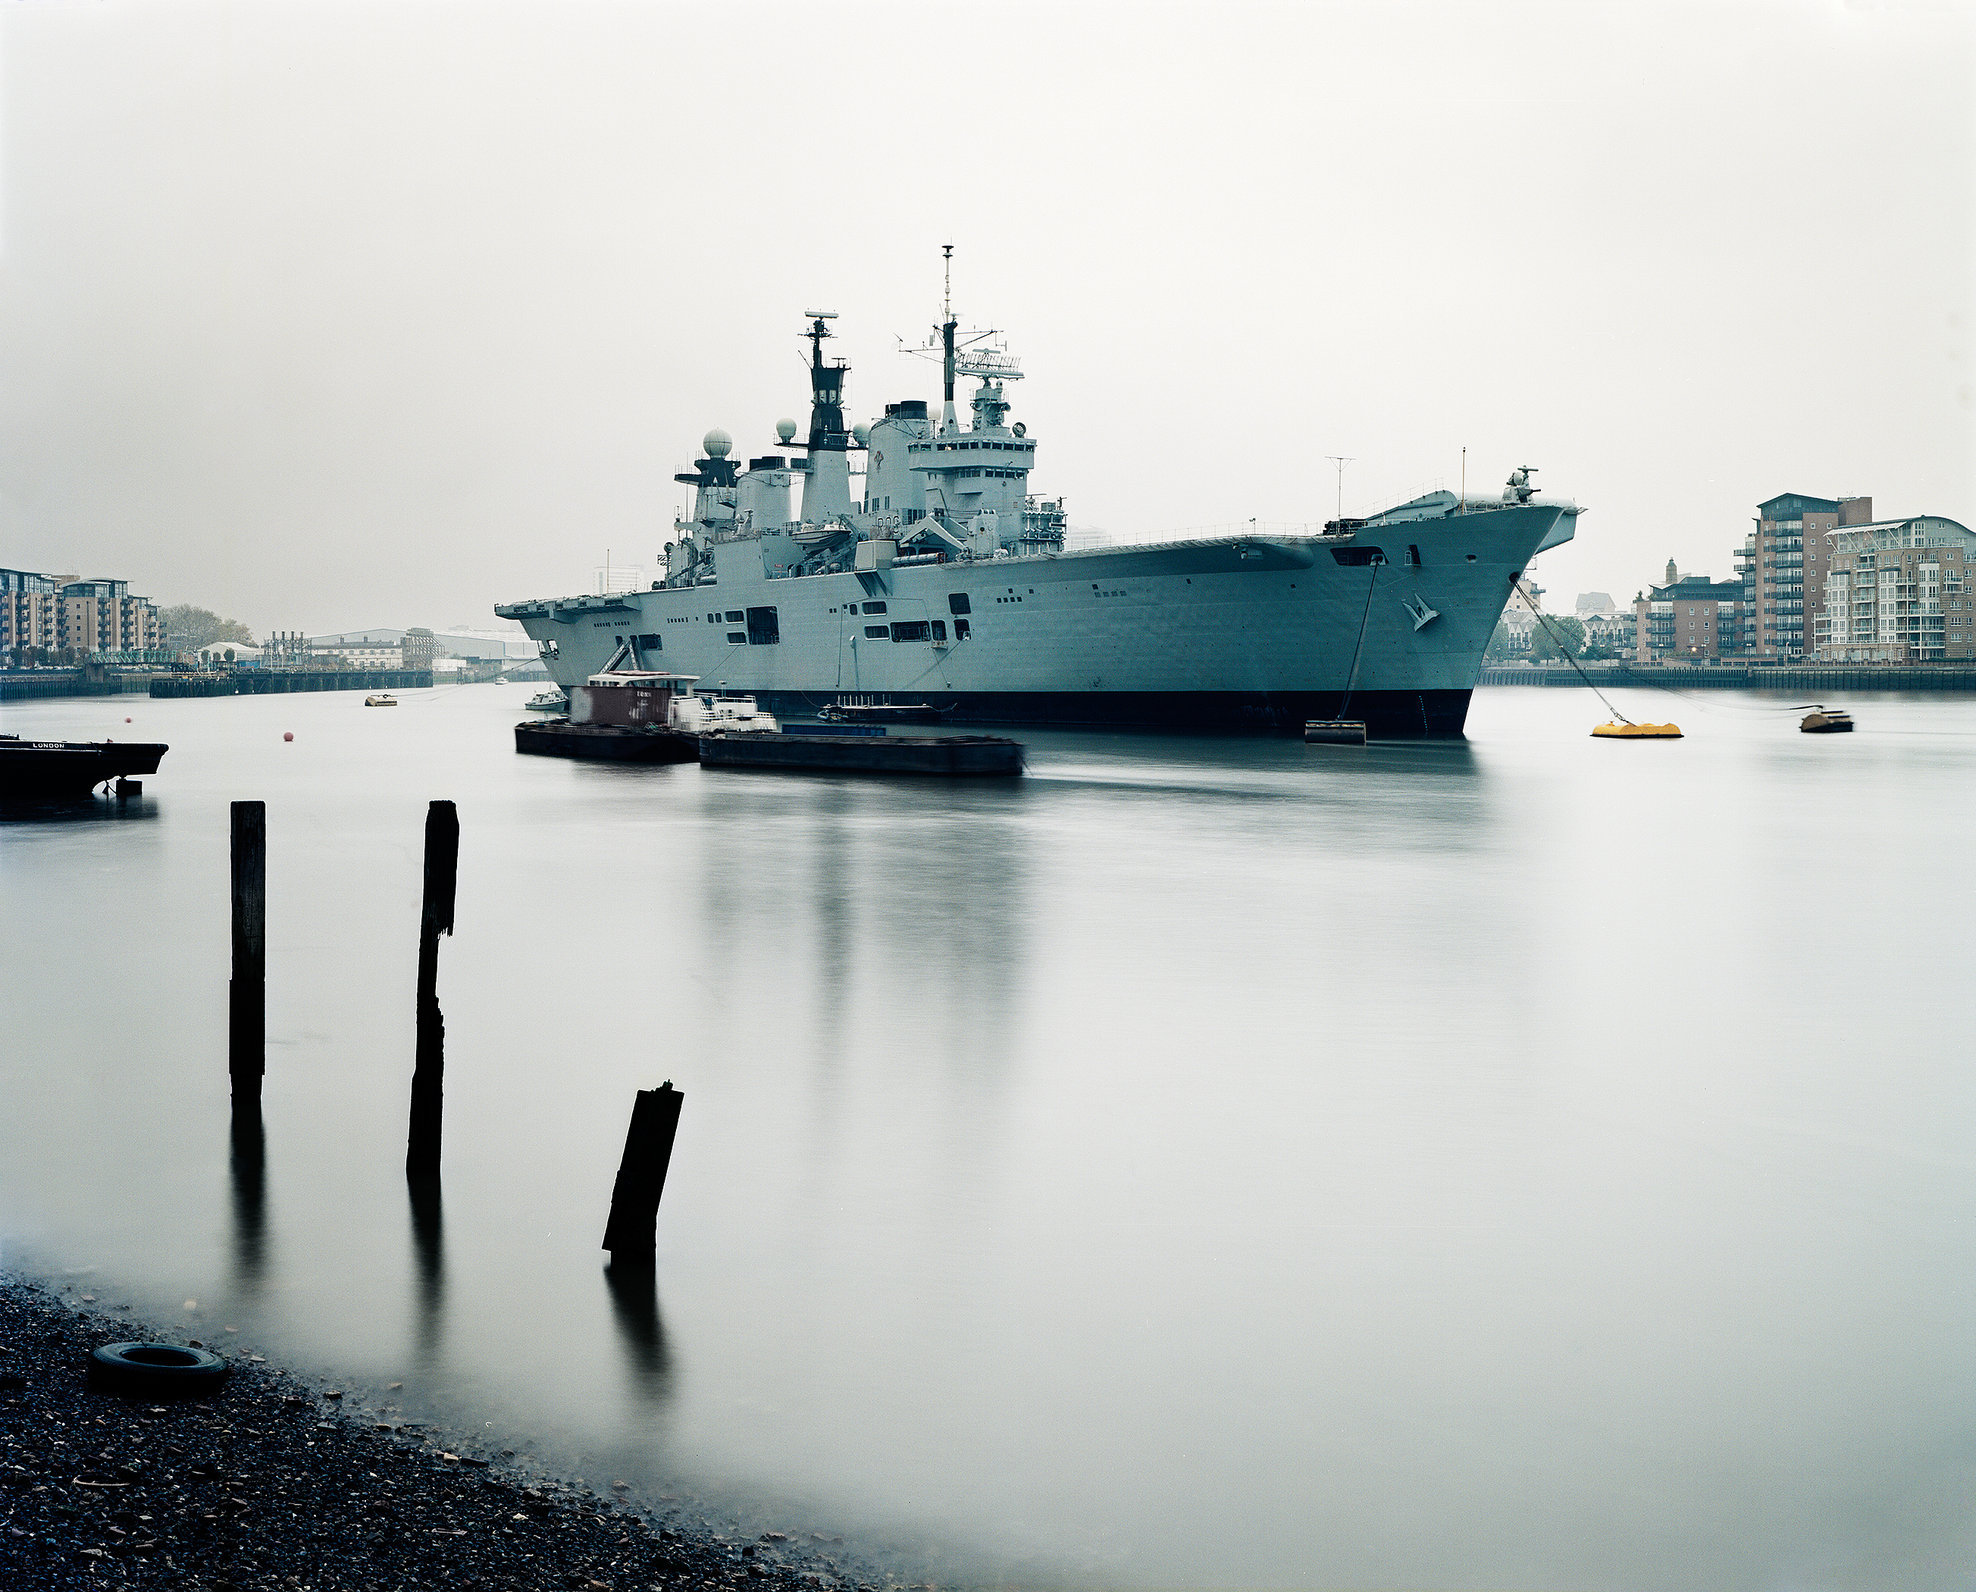 HMS Illustrious (R06), Thames River